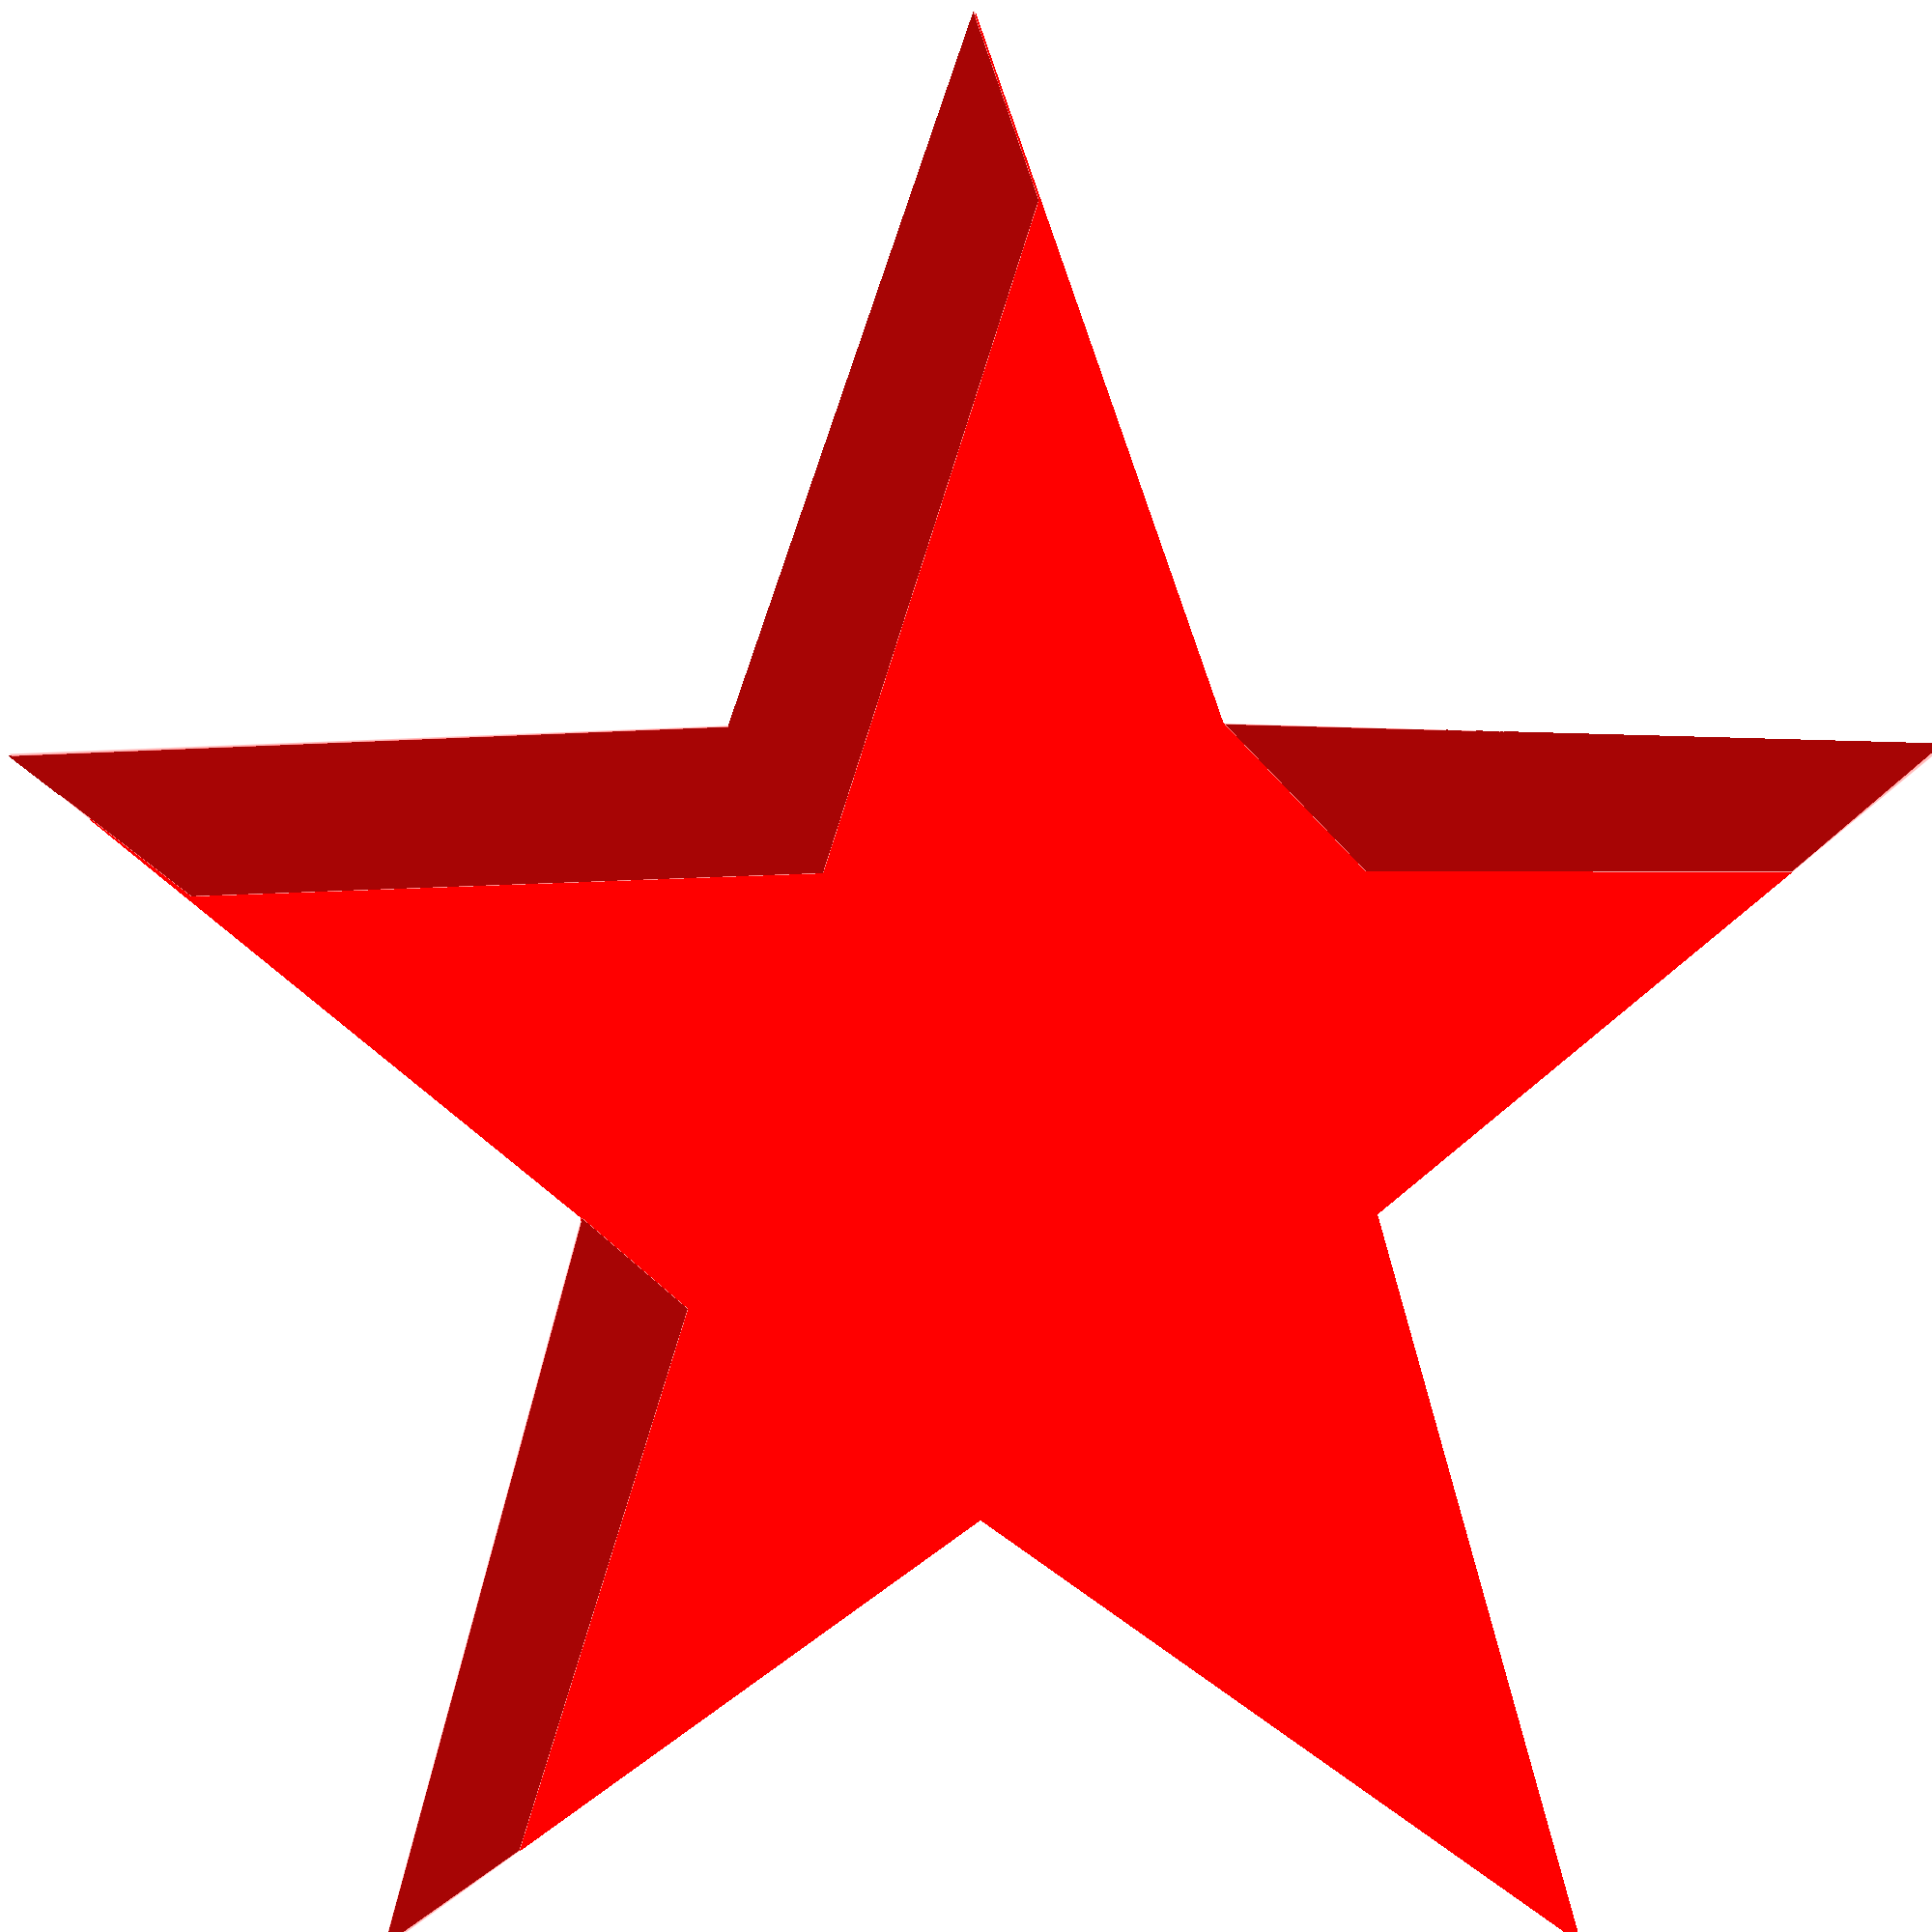 Star images png. Red free download